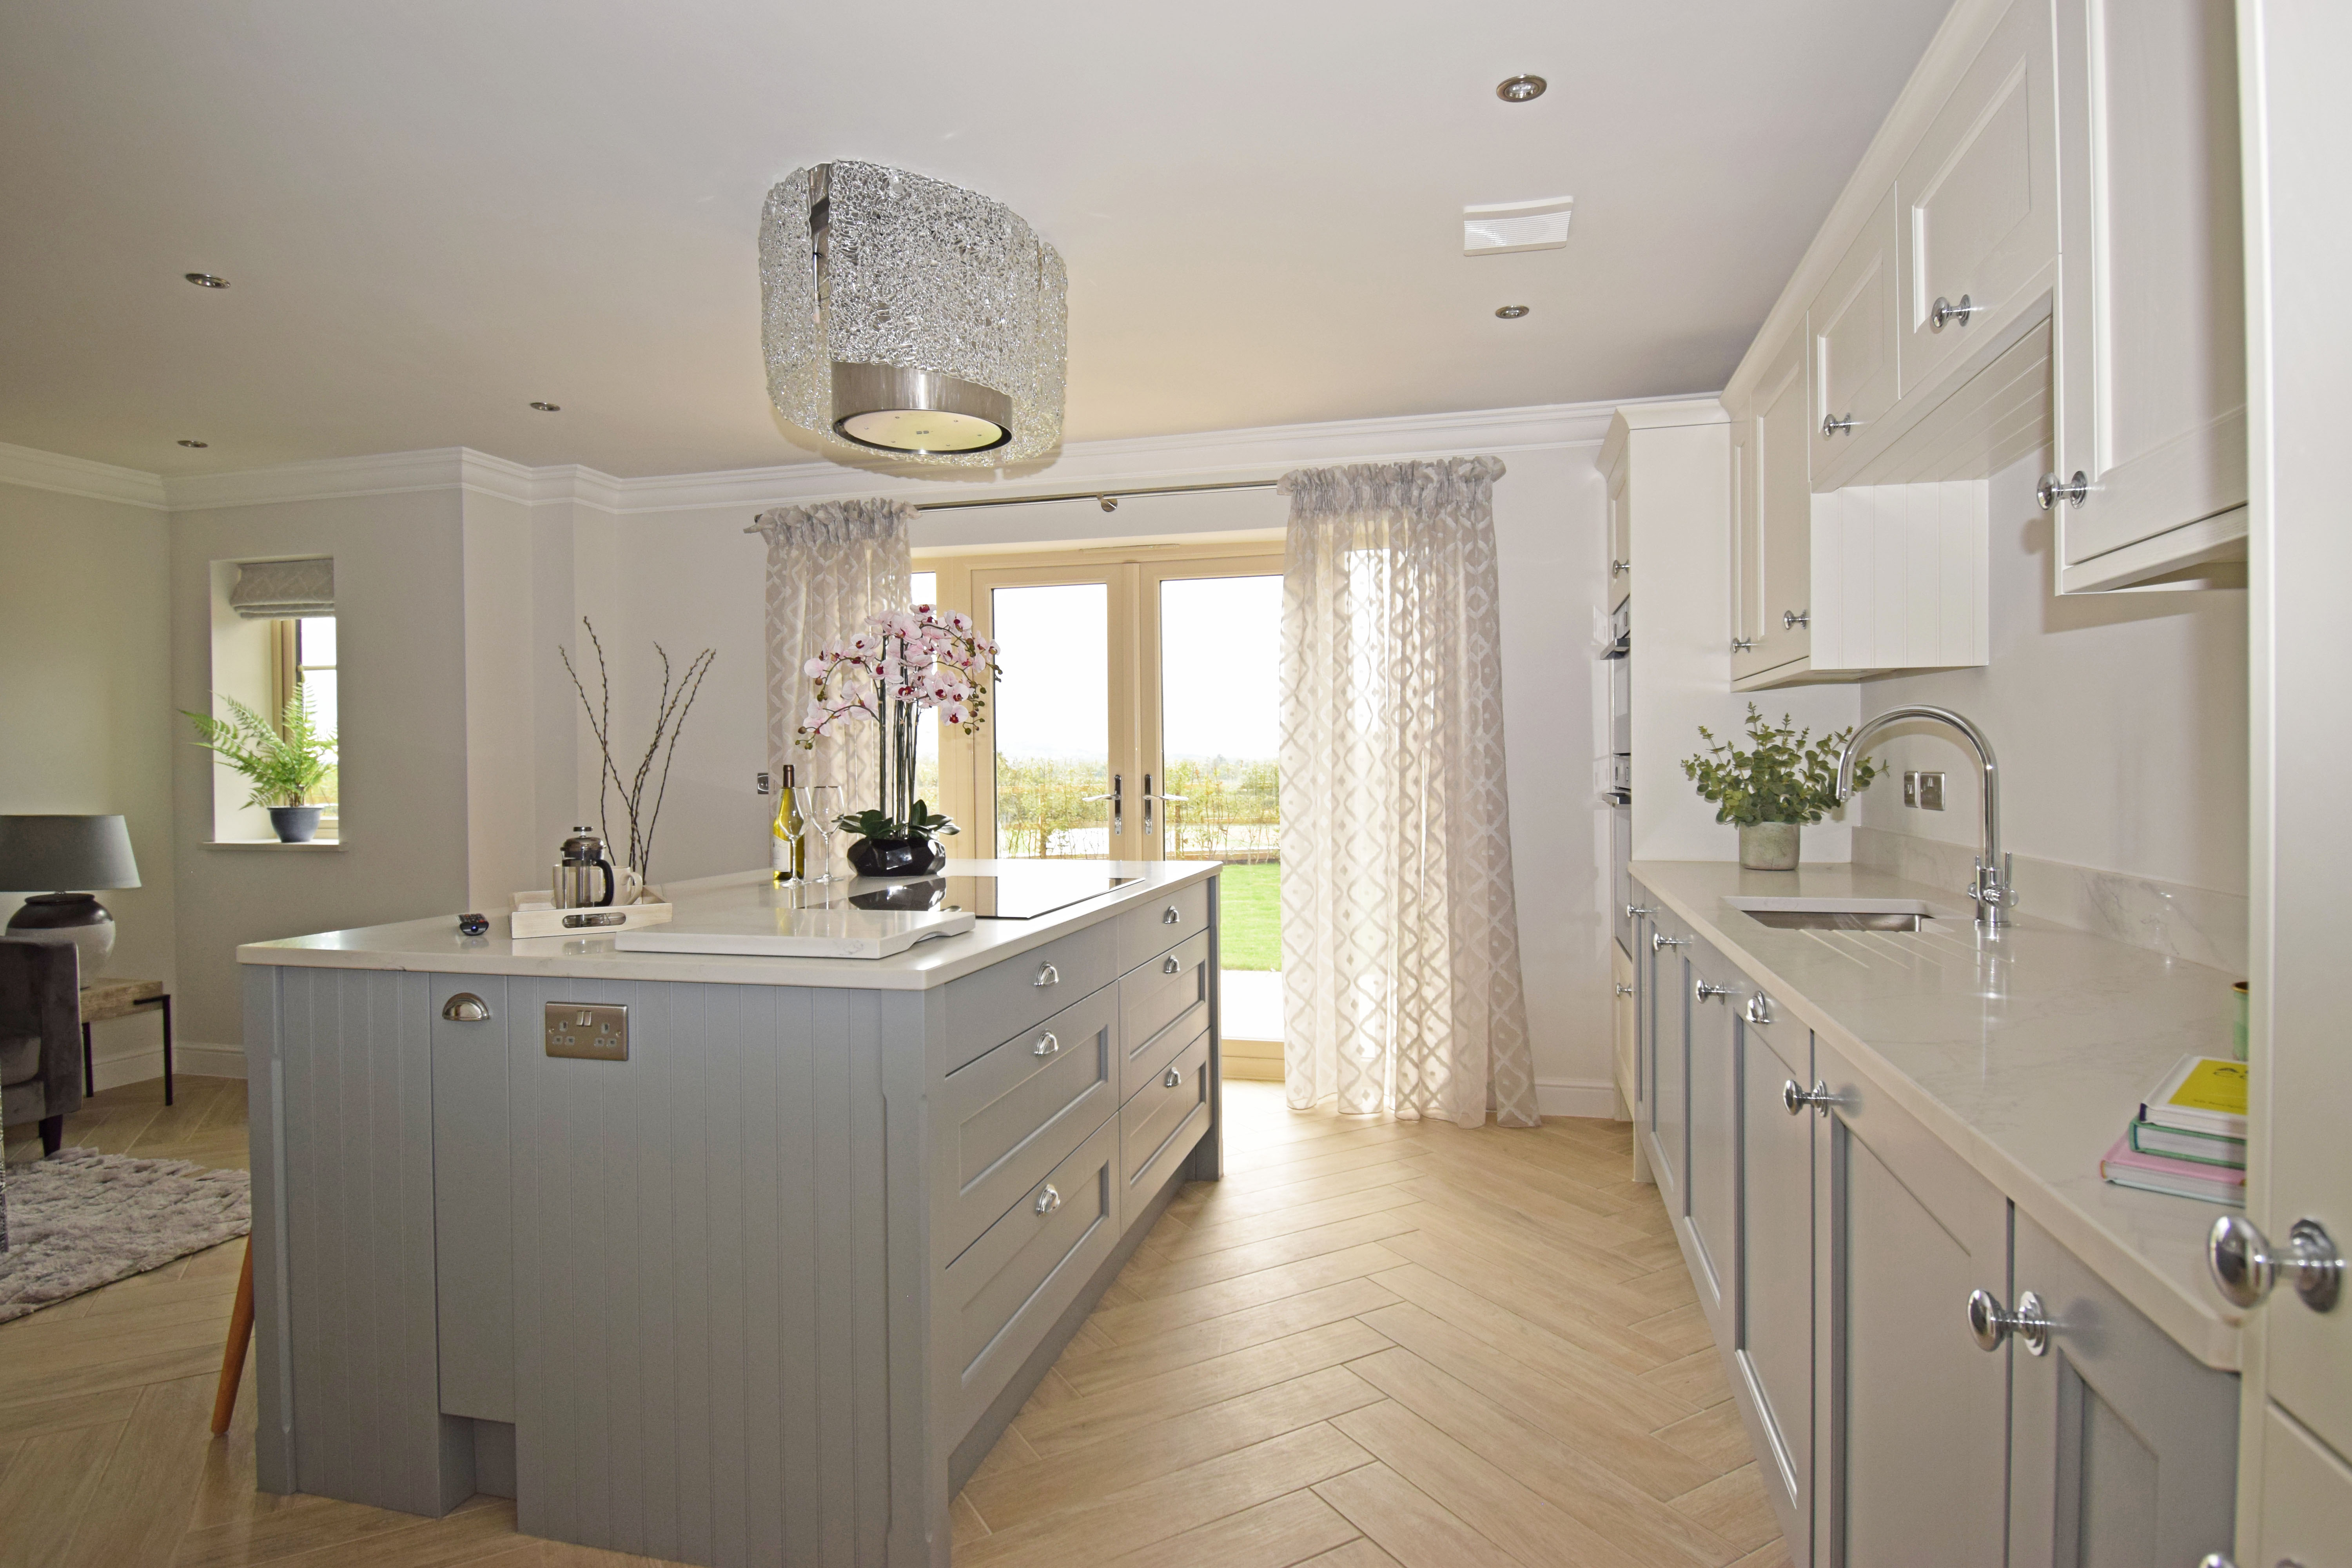 Plot 1 Peachley Court, kitchen